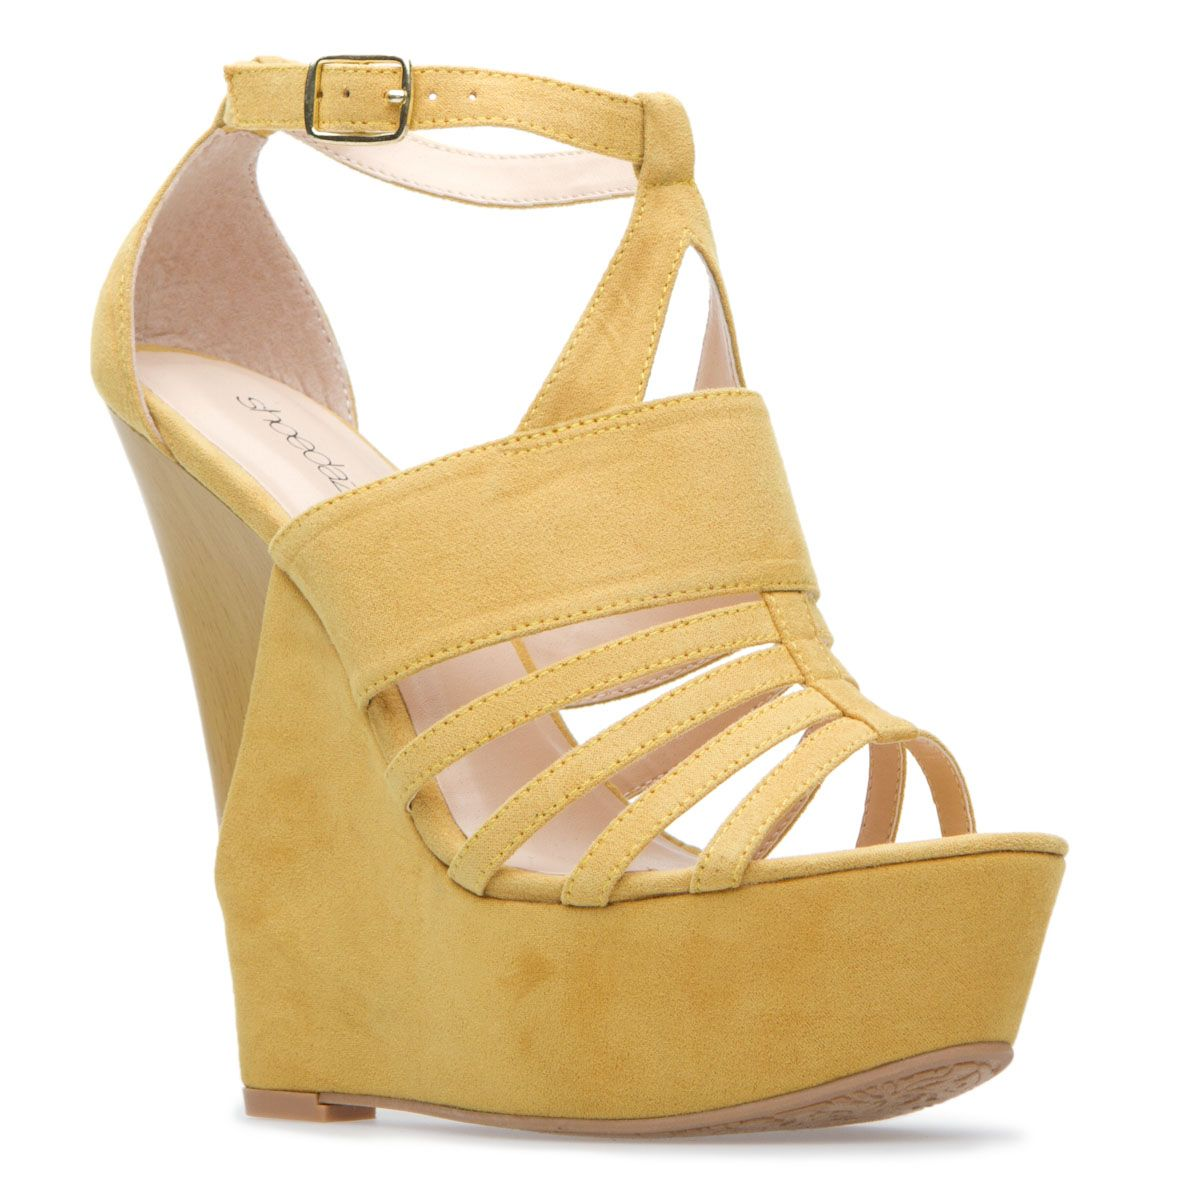 I love the color of these heels! Aurelie $39.95